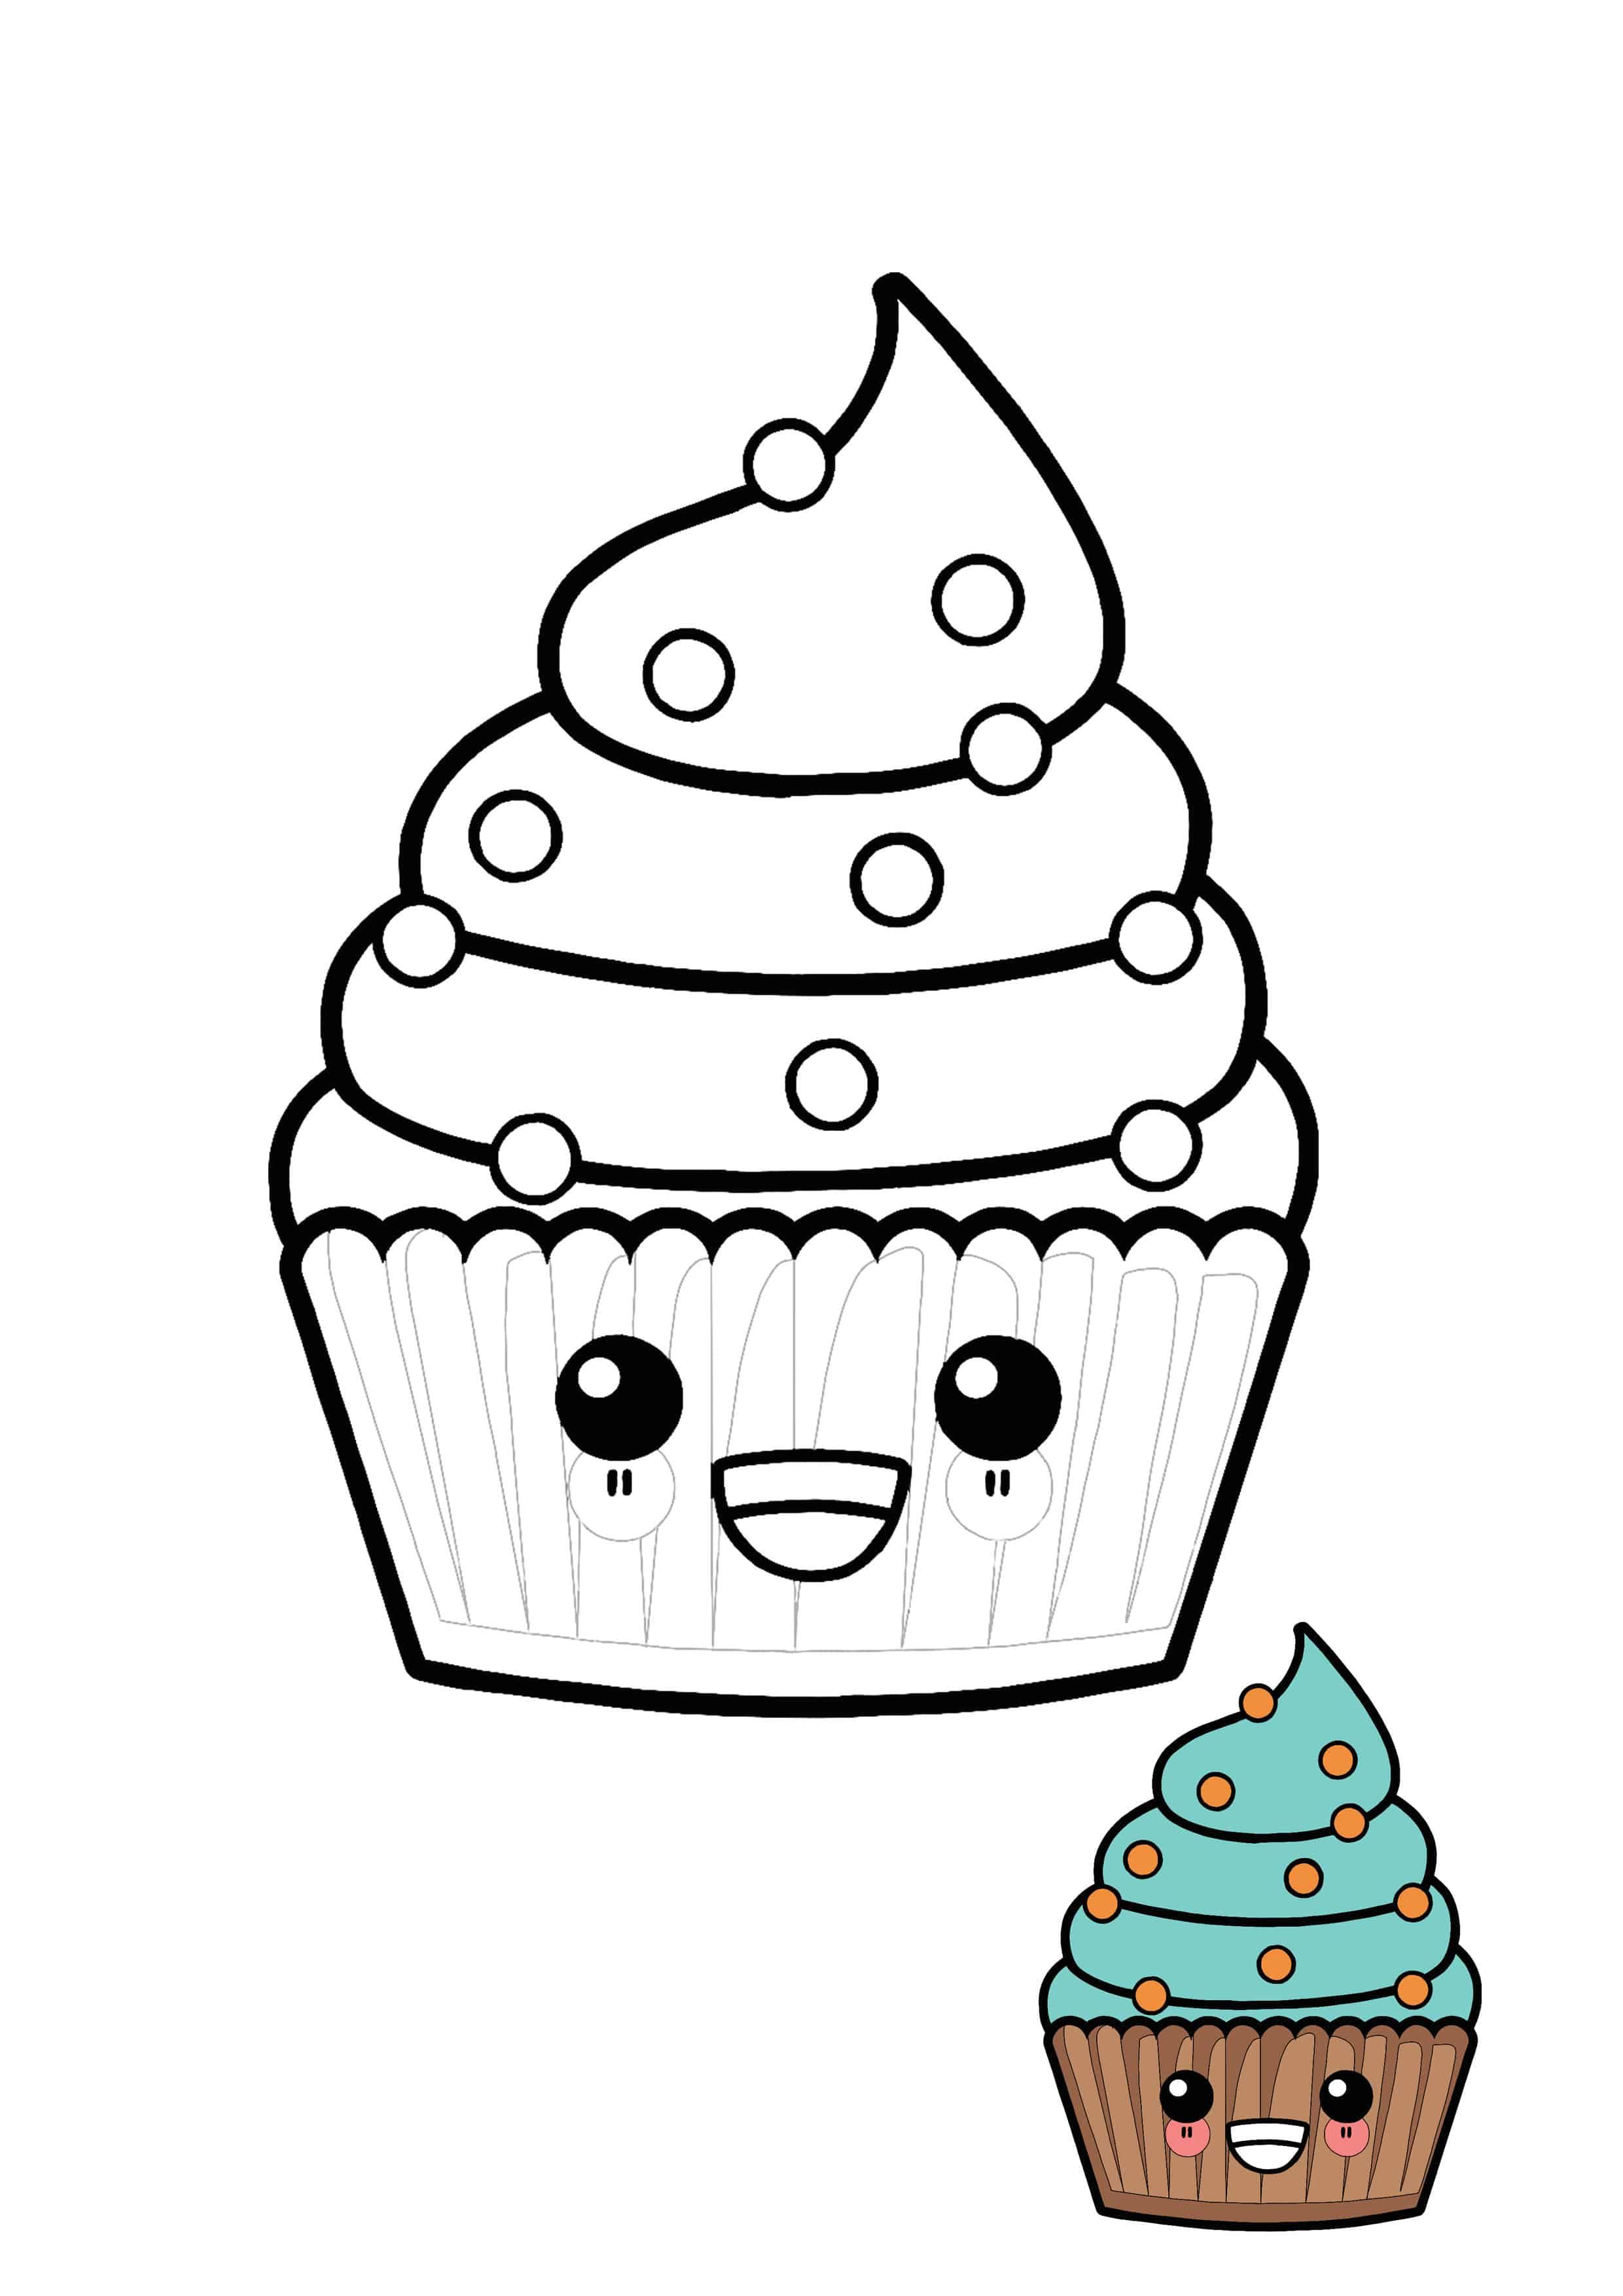 Cute Kawaii Cupcake Coloring Page In 2020 Cupcake Coloring Pages Coloring Pages Free Printable Coloring Pages